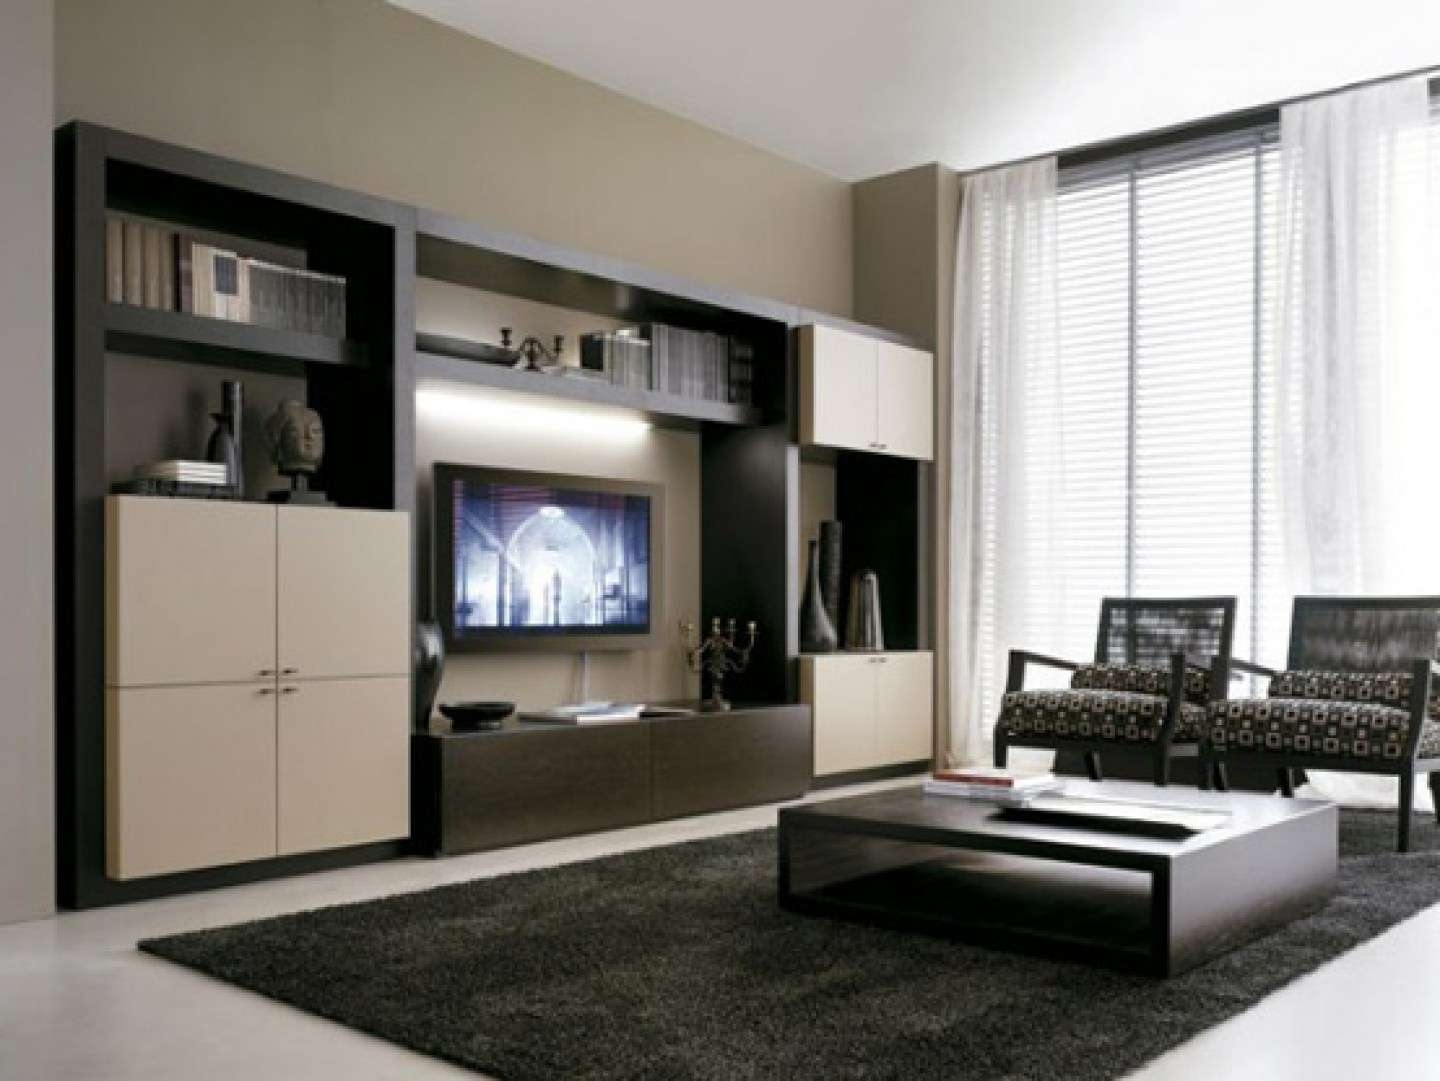 20 Modern Tv Unit Design Ideas For Bedroom Living Room With For Stylish Tv Cabinets (View 18 of 20)